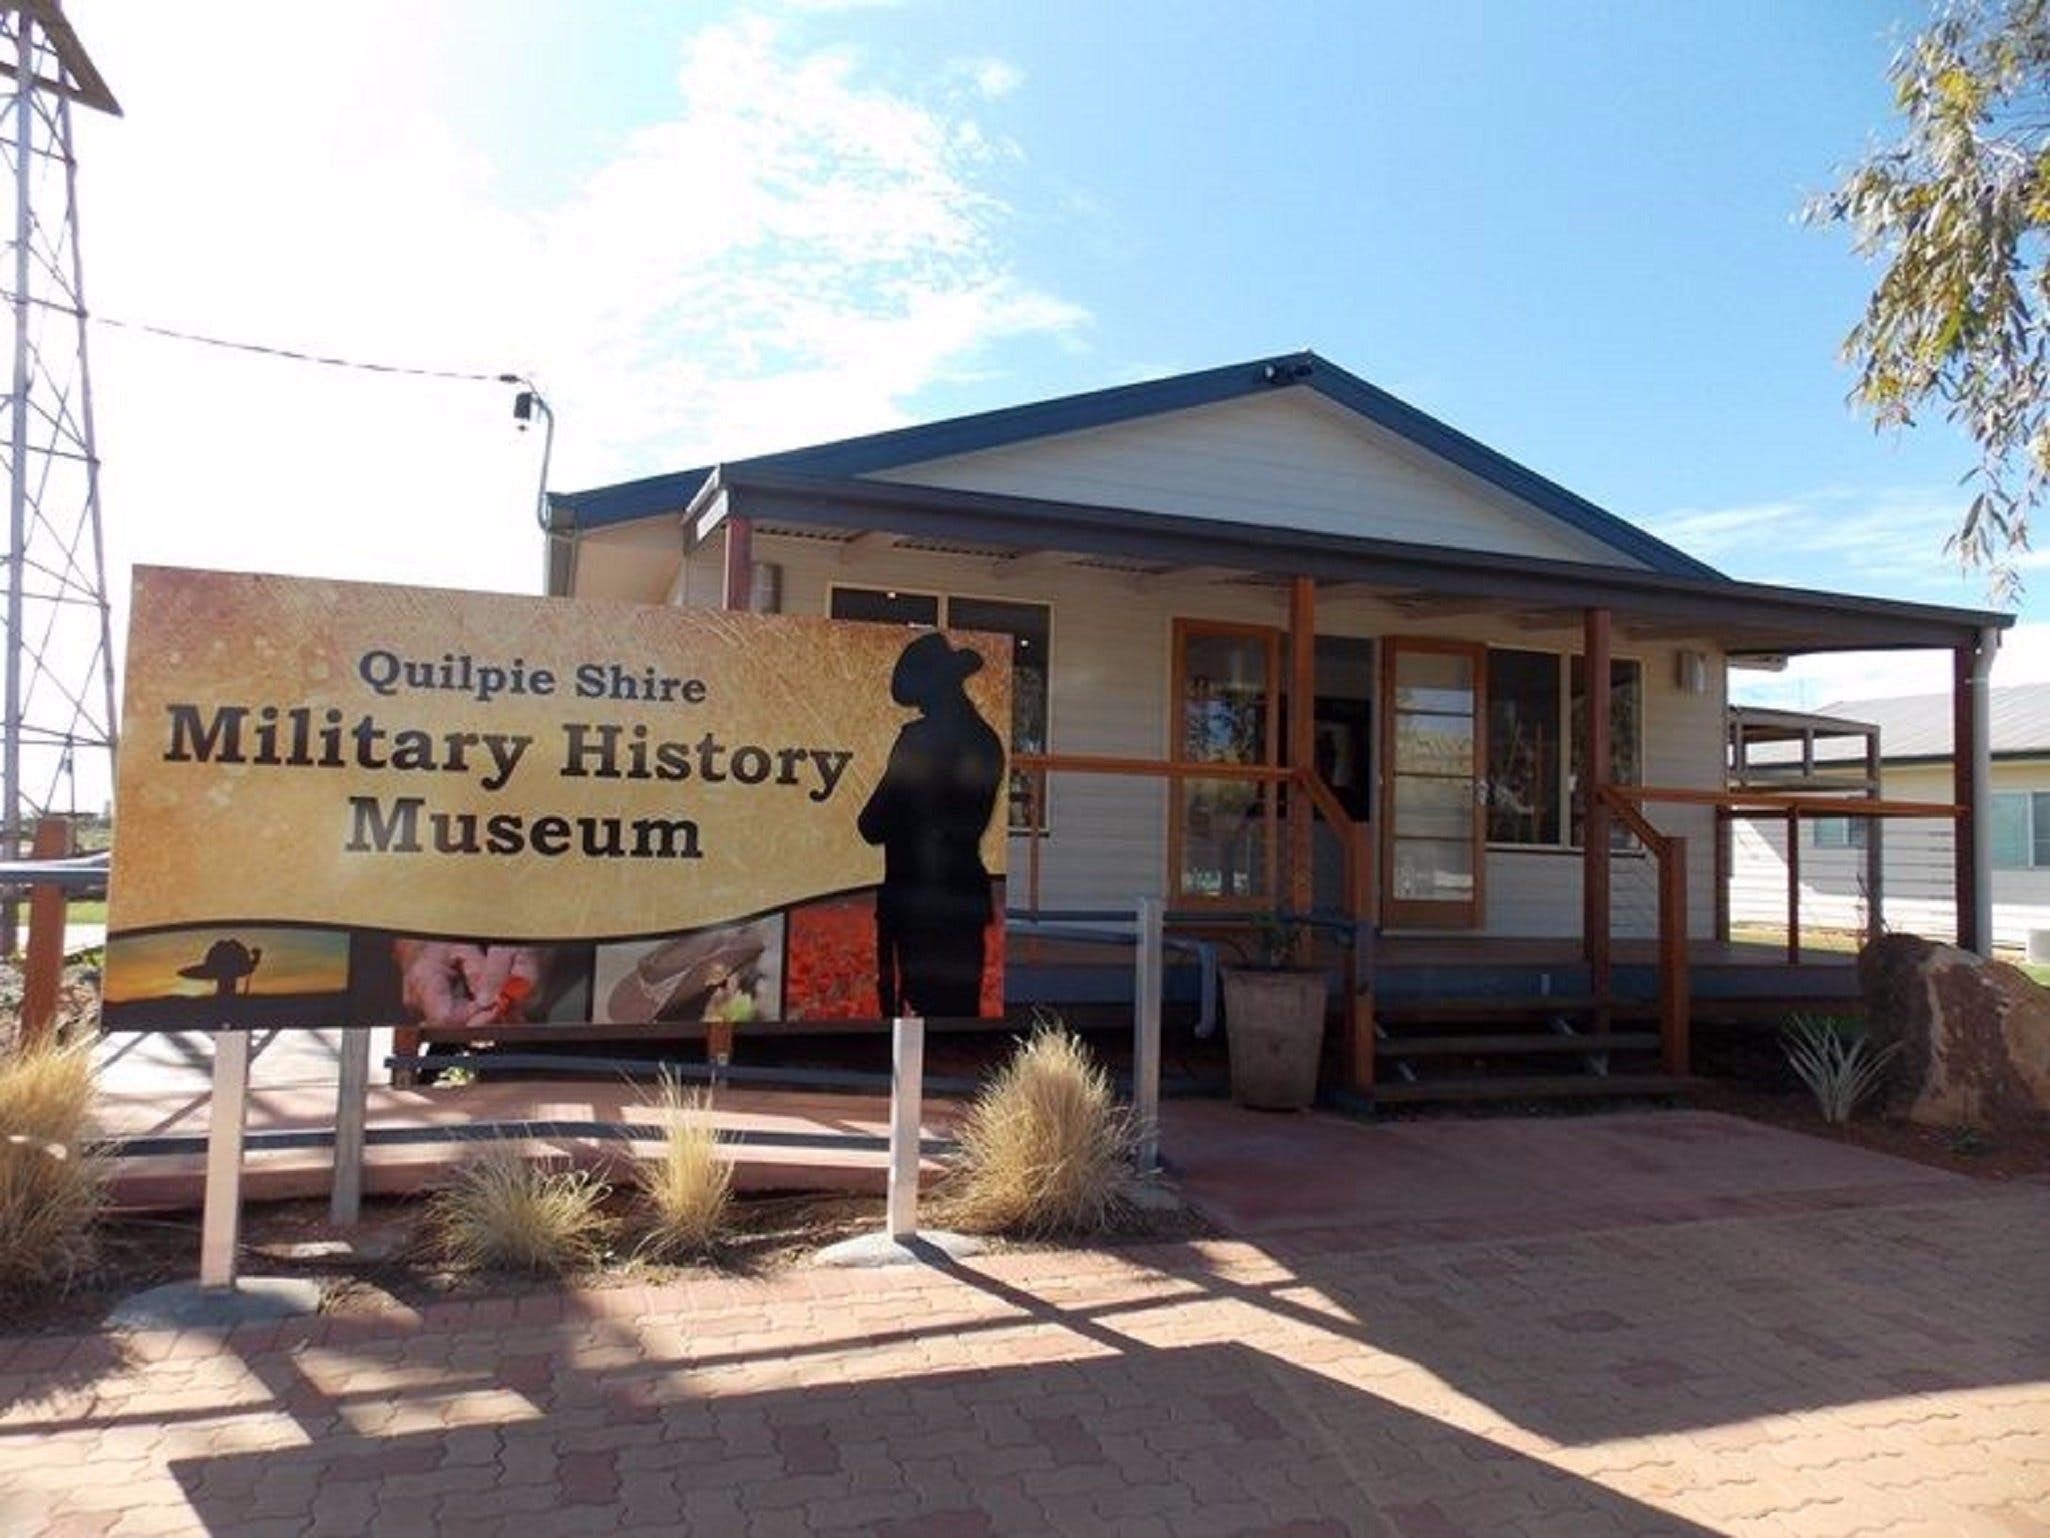 Quilpie Shire Military History Museum - Accommodation Sunshine Coast